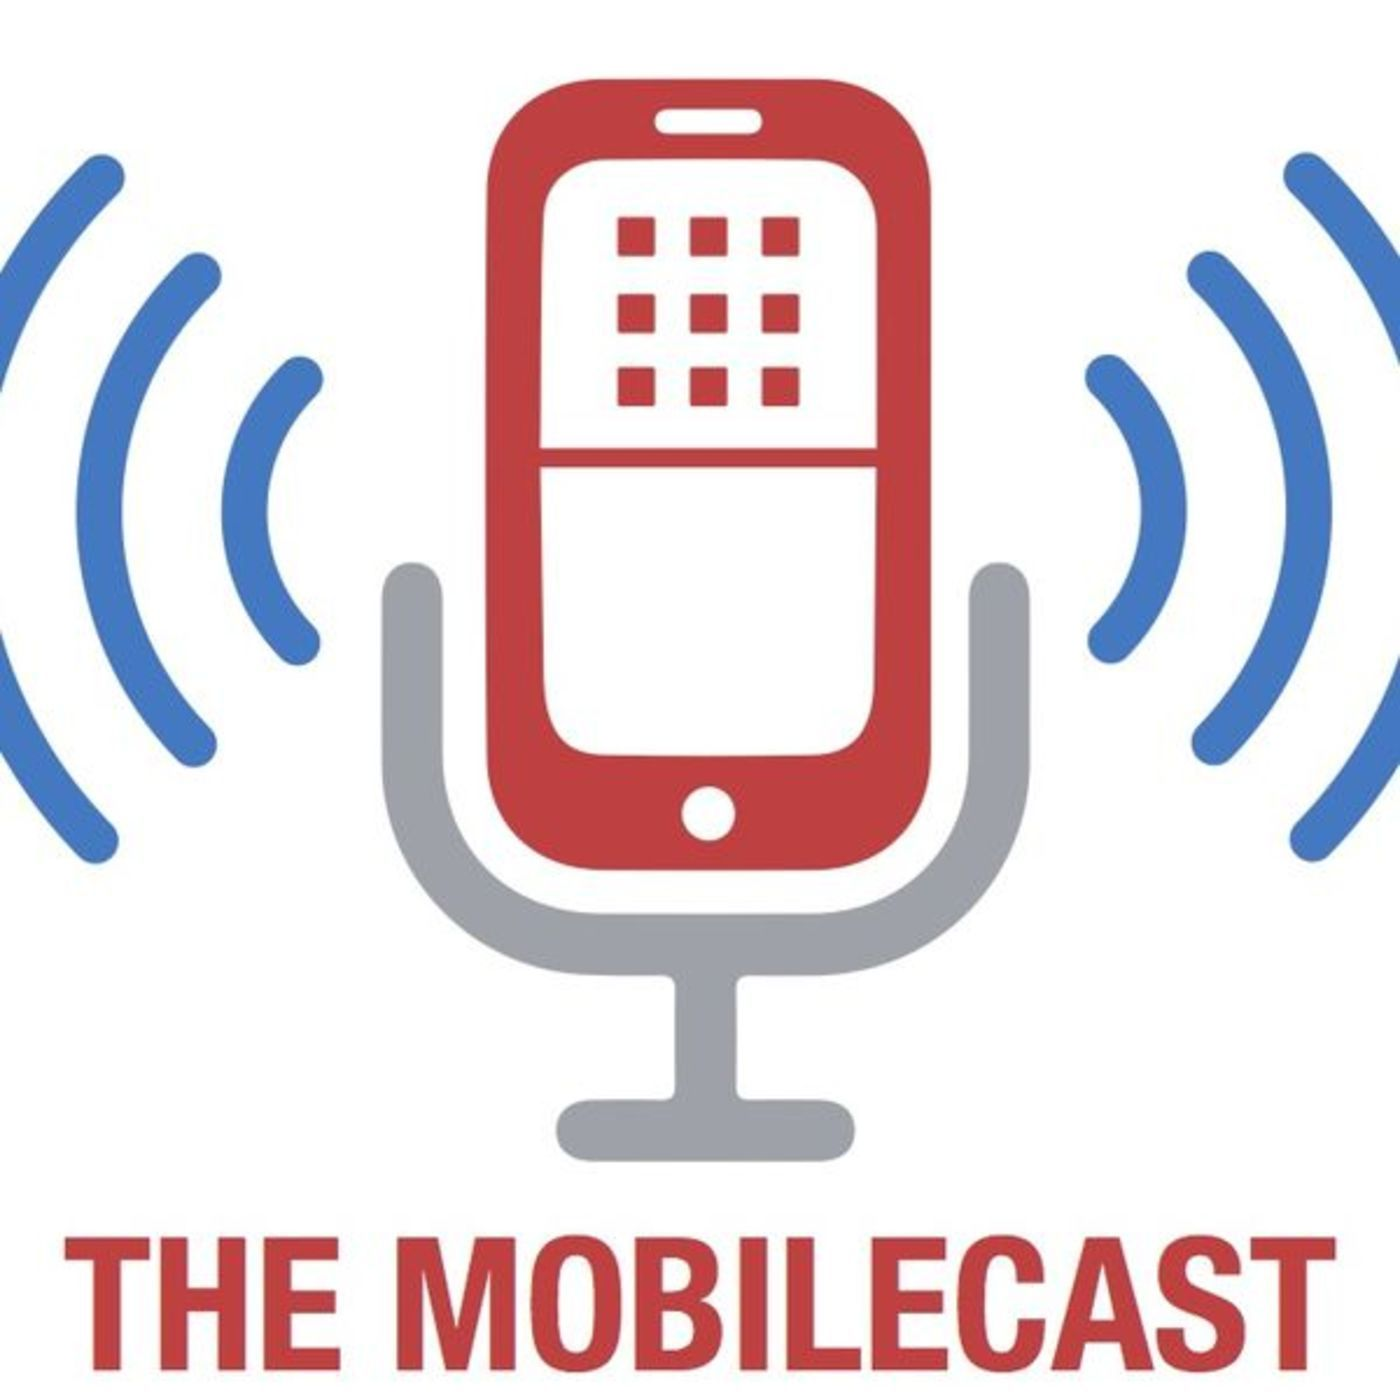 The Mobilecast #305 – S3 Ep 05 MWC 2016 Day 3 Recap with Eric Klein